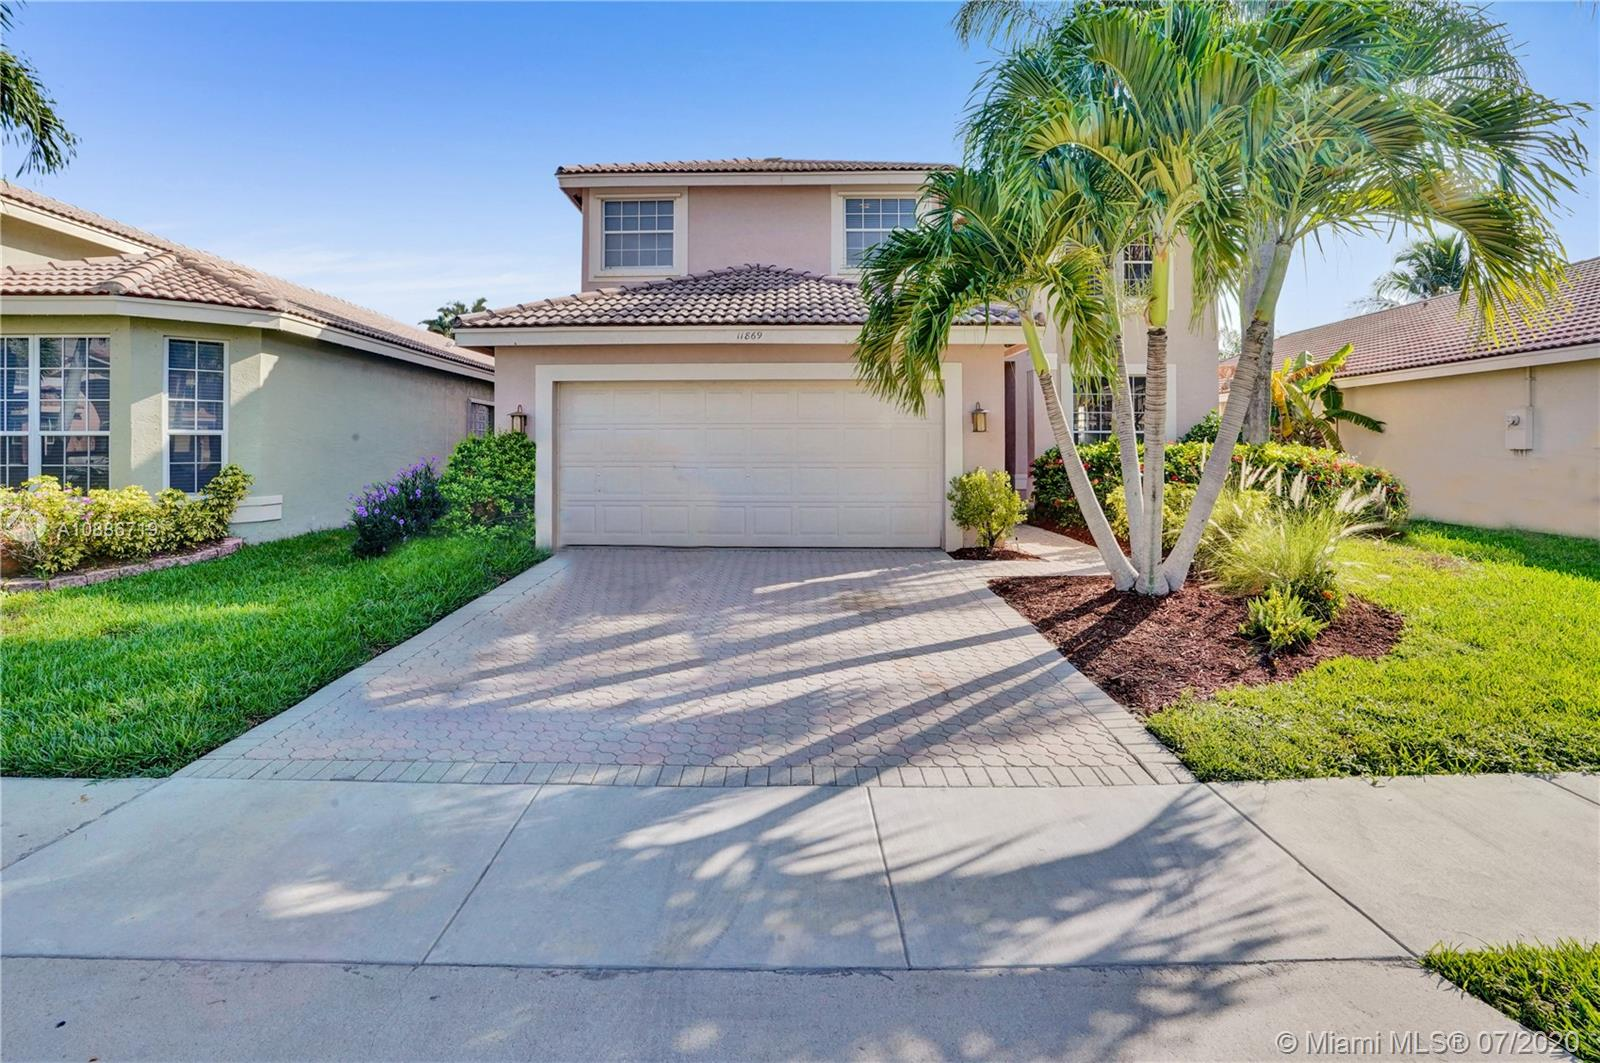 Rare opportunity for a Beautifully Updated Home! Move-in Ready, 4 bed 2.5 bath Single Family Home with an Amazing Kitchen, situated in the gated community of Wyndham Lakes in North Coral Springs. Two sets of sliding glass doors lead onto the large screened patio pool area creating the perfect link from inside to out. All Bedrooms on 2nd floor including a Spacious Master Bedroom with a large walk-in closet. Featuring high ceilings, hurricane shutters, 2 car Garage,and fully screened backyard SALT WATER pool, Tons of storage, Low HOA & Top Rated Schools. Prime Location that has been meticulously maintained by original and proud owners!!! Make your showing appointment today!